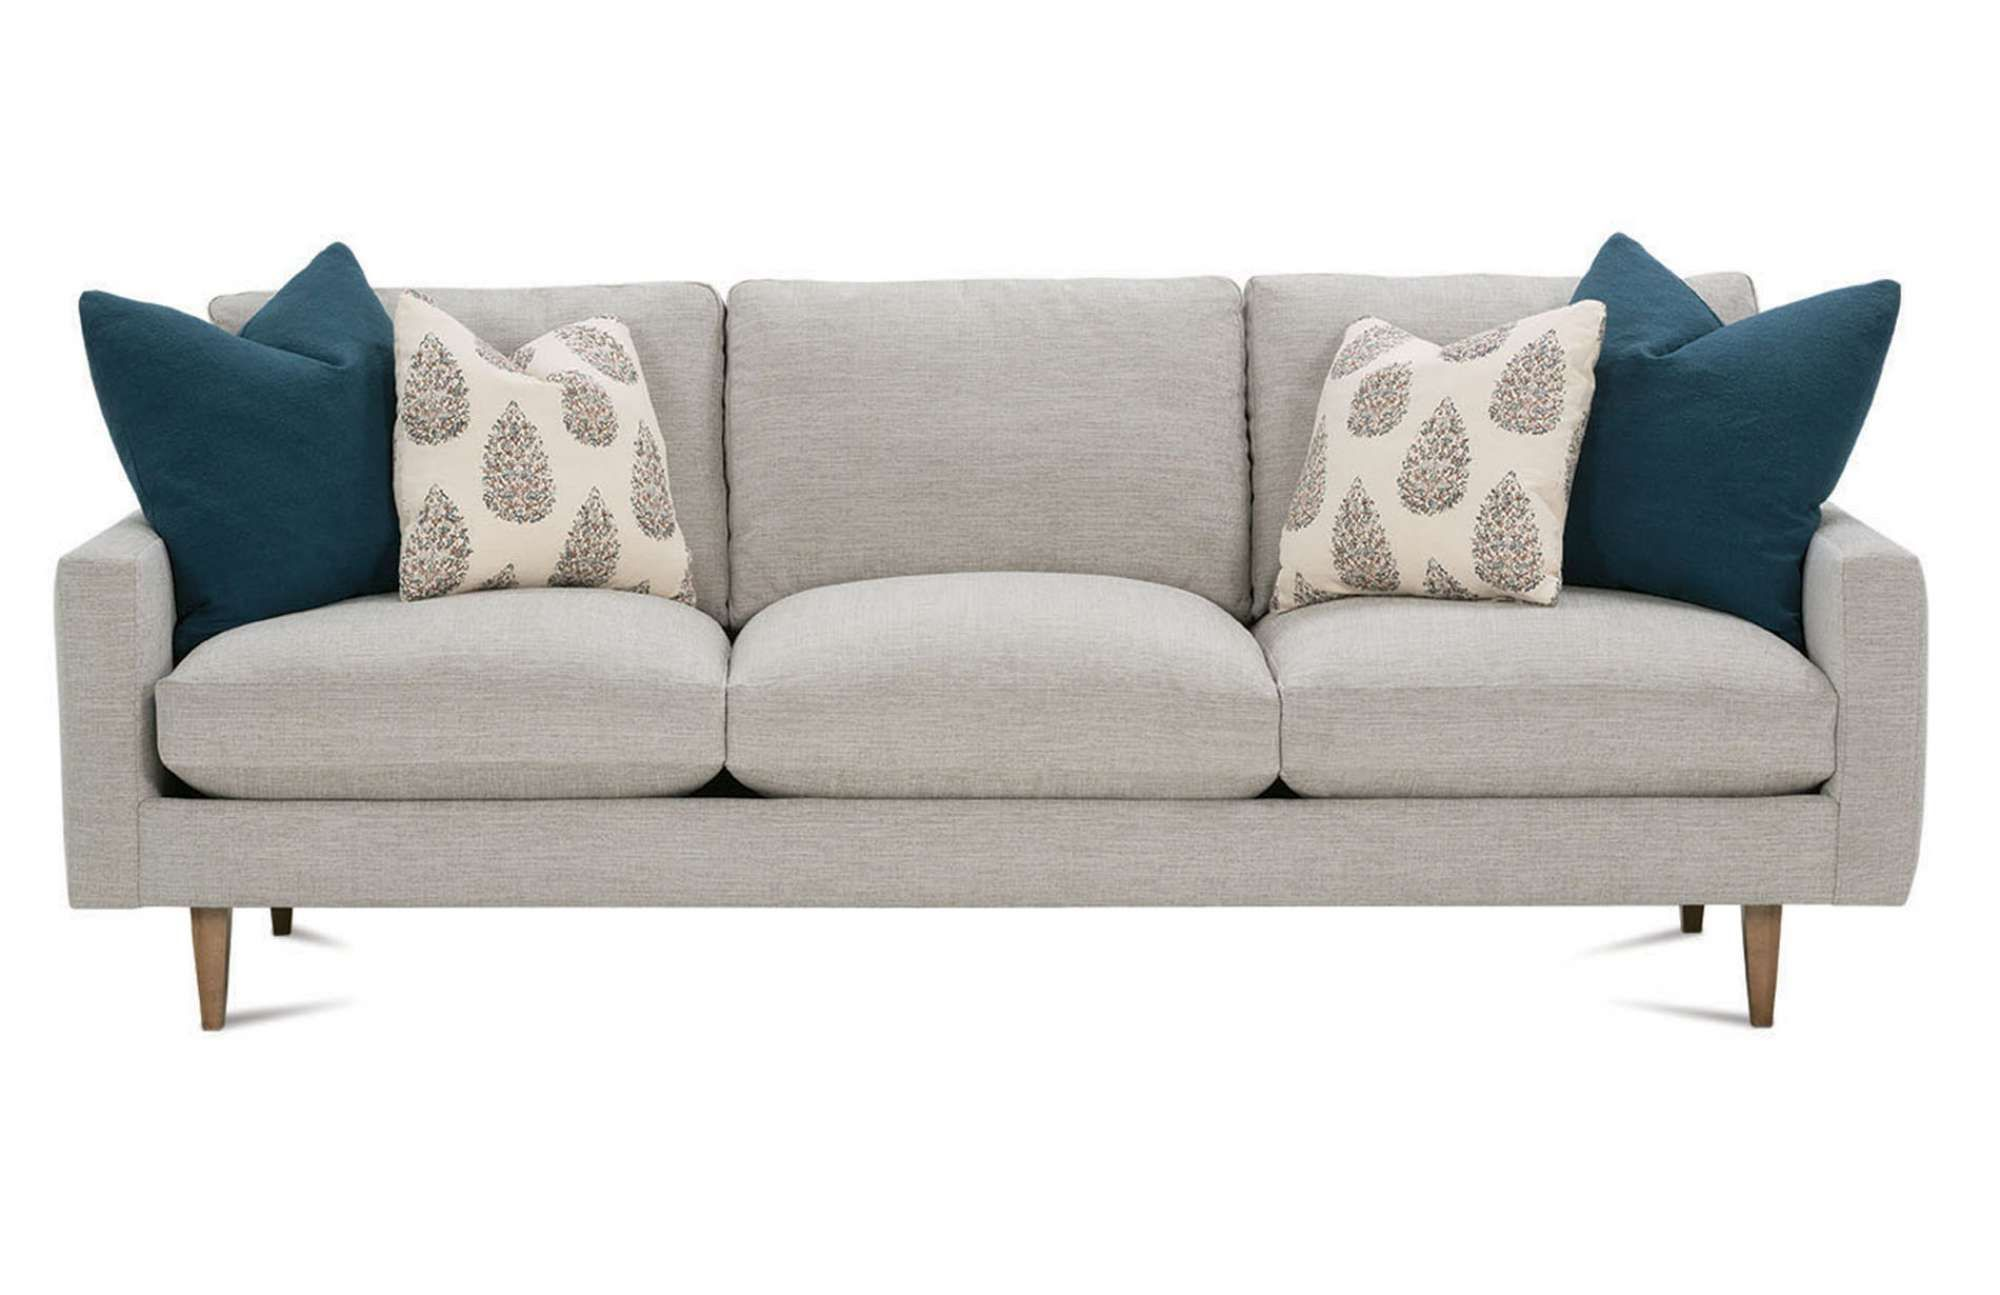 Sofa Repair Charlotte Nc The Oslo Sofa Is A Perfect Modern Luxury Furniture Design That Can